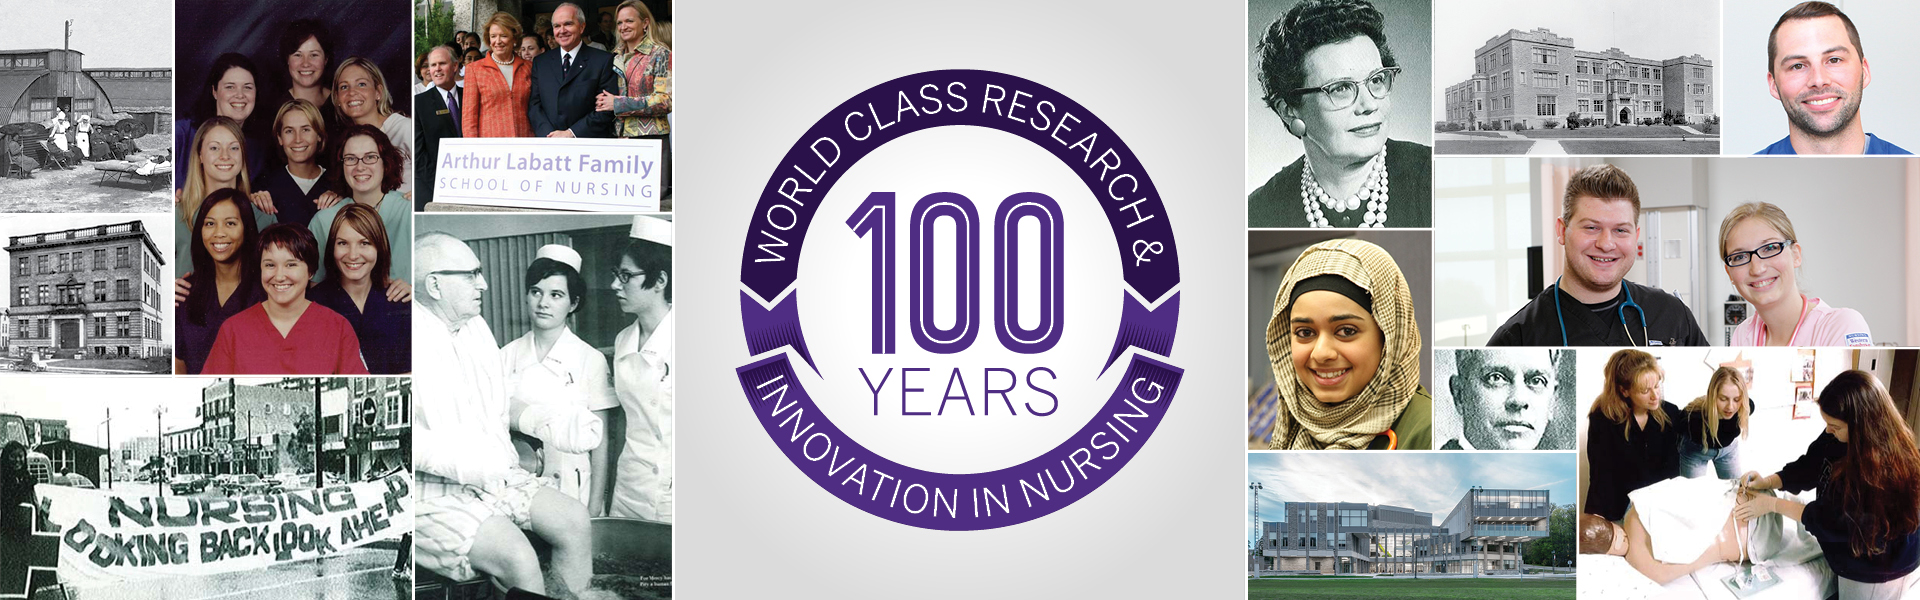 100 Years - World class research and innovation in nursing